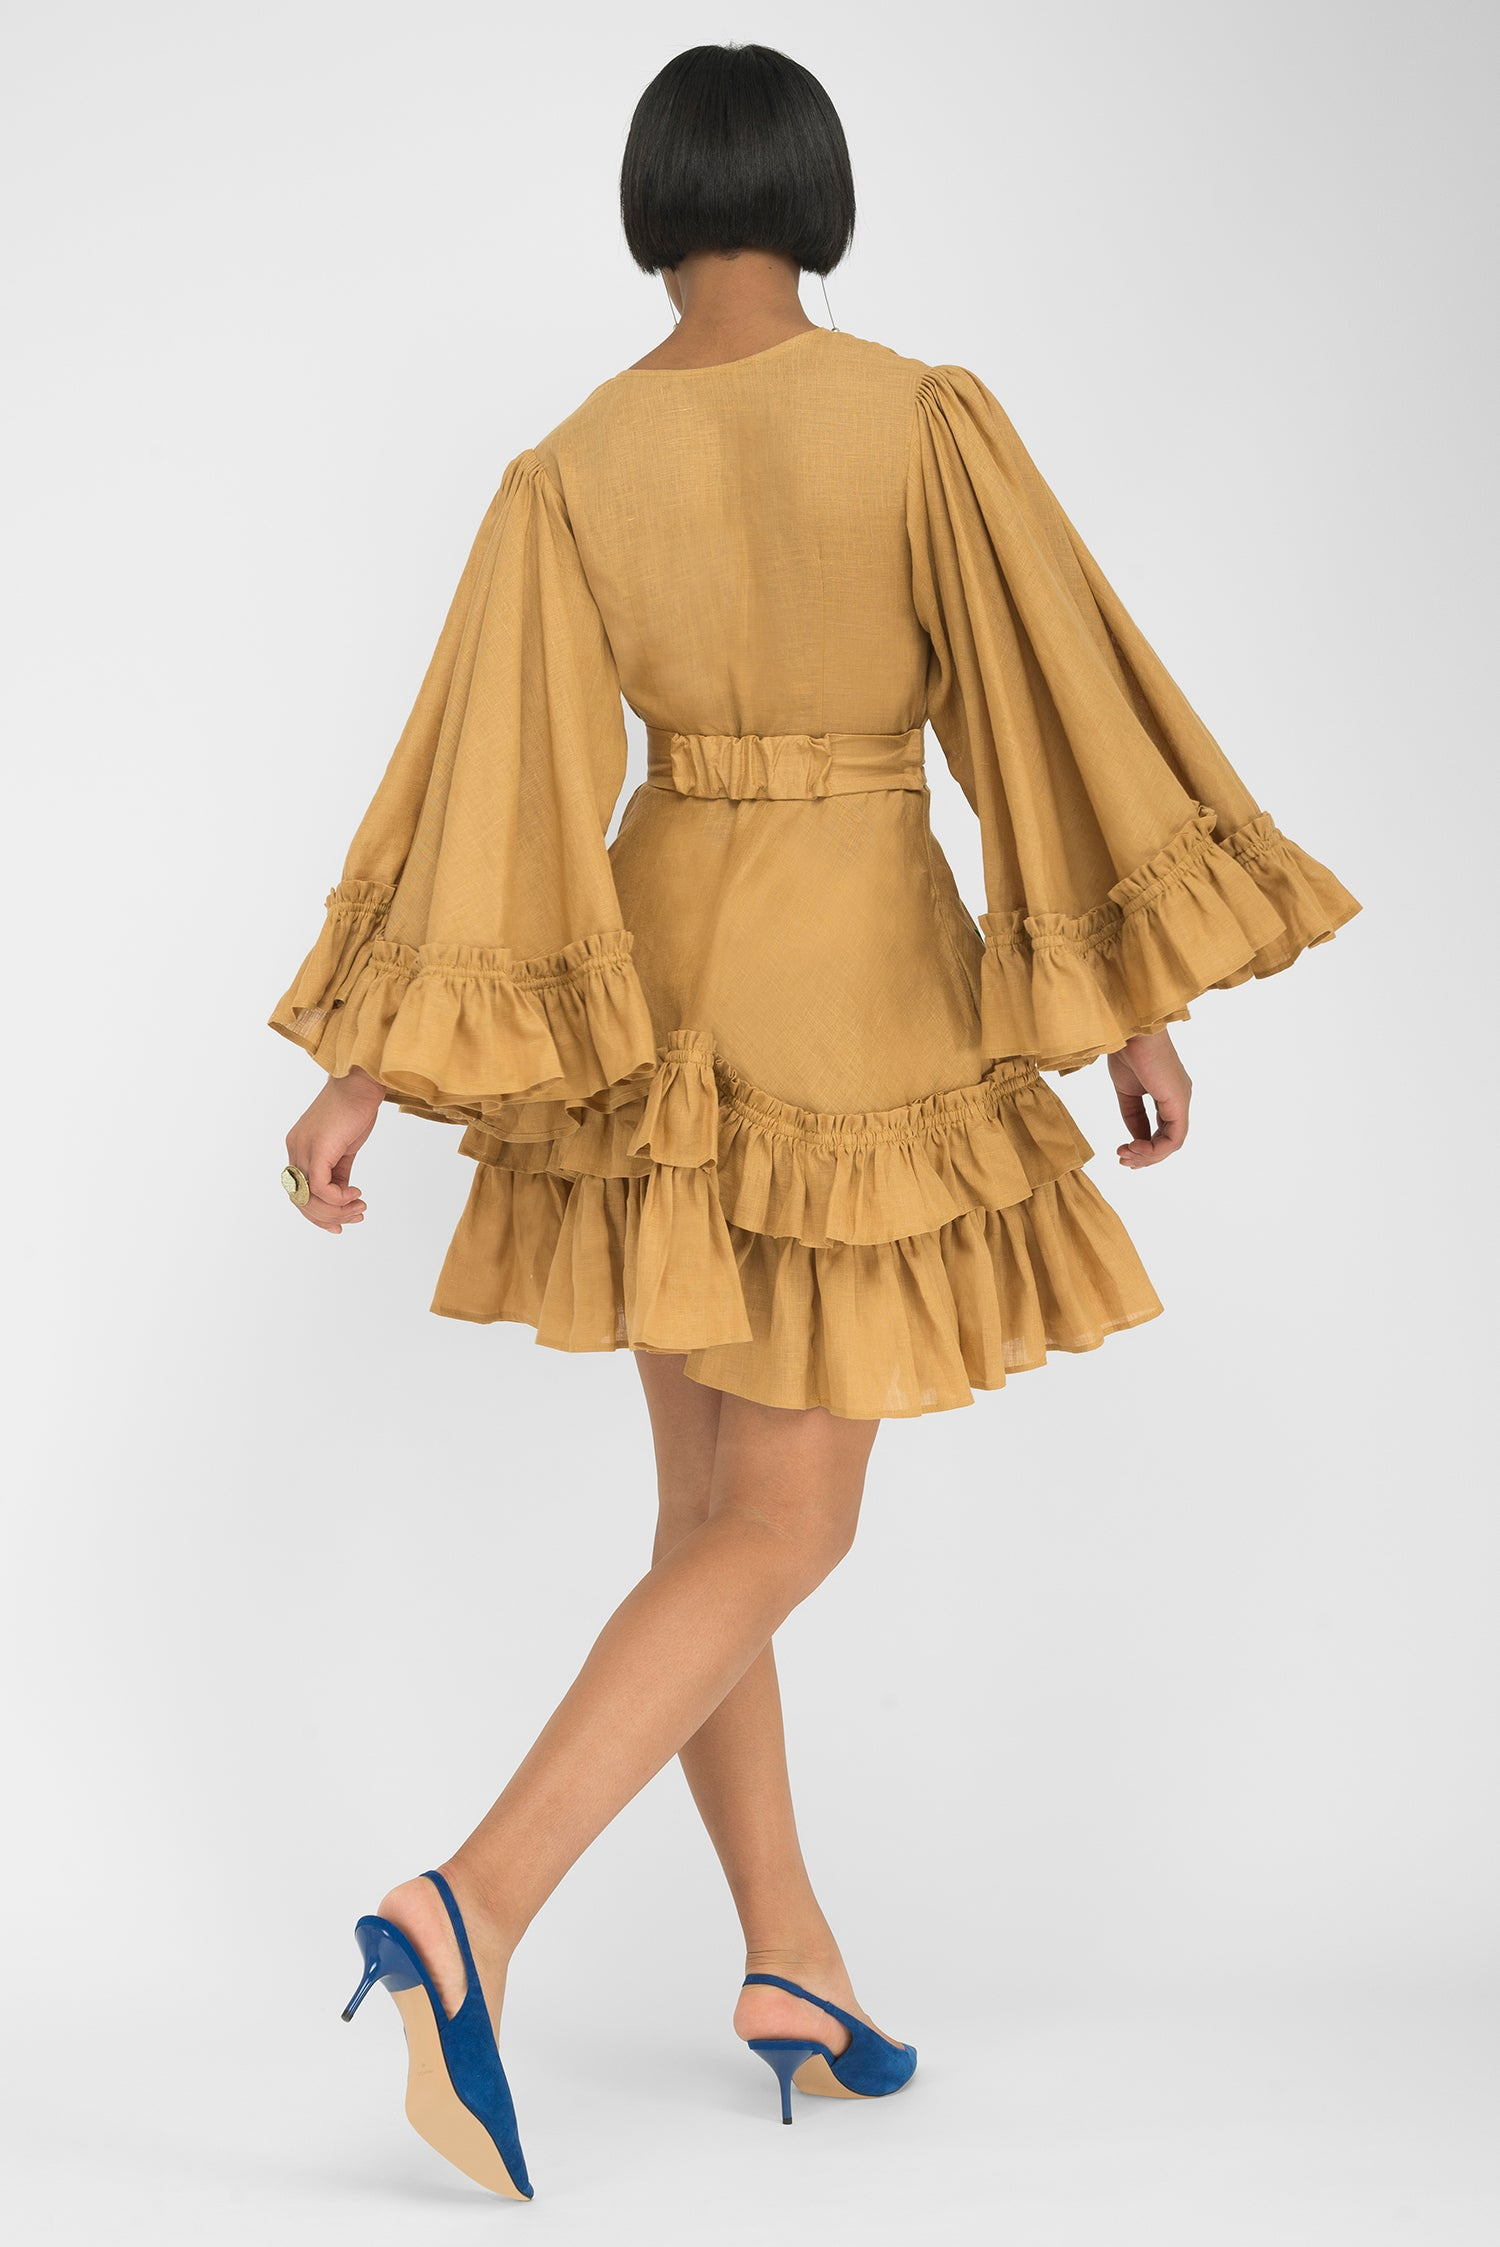 FANM MON TLOS Caramel Linen Flirty Mini Dress